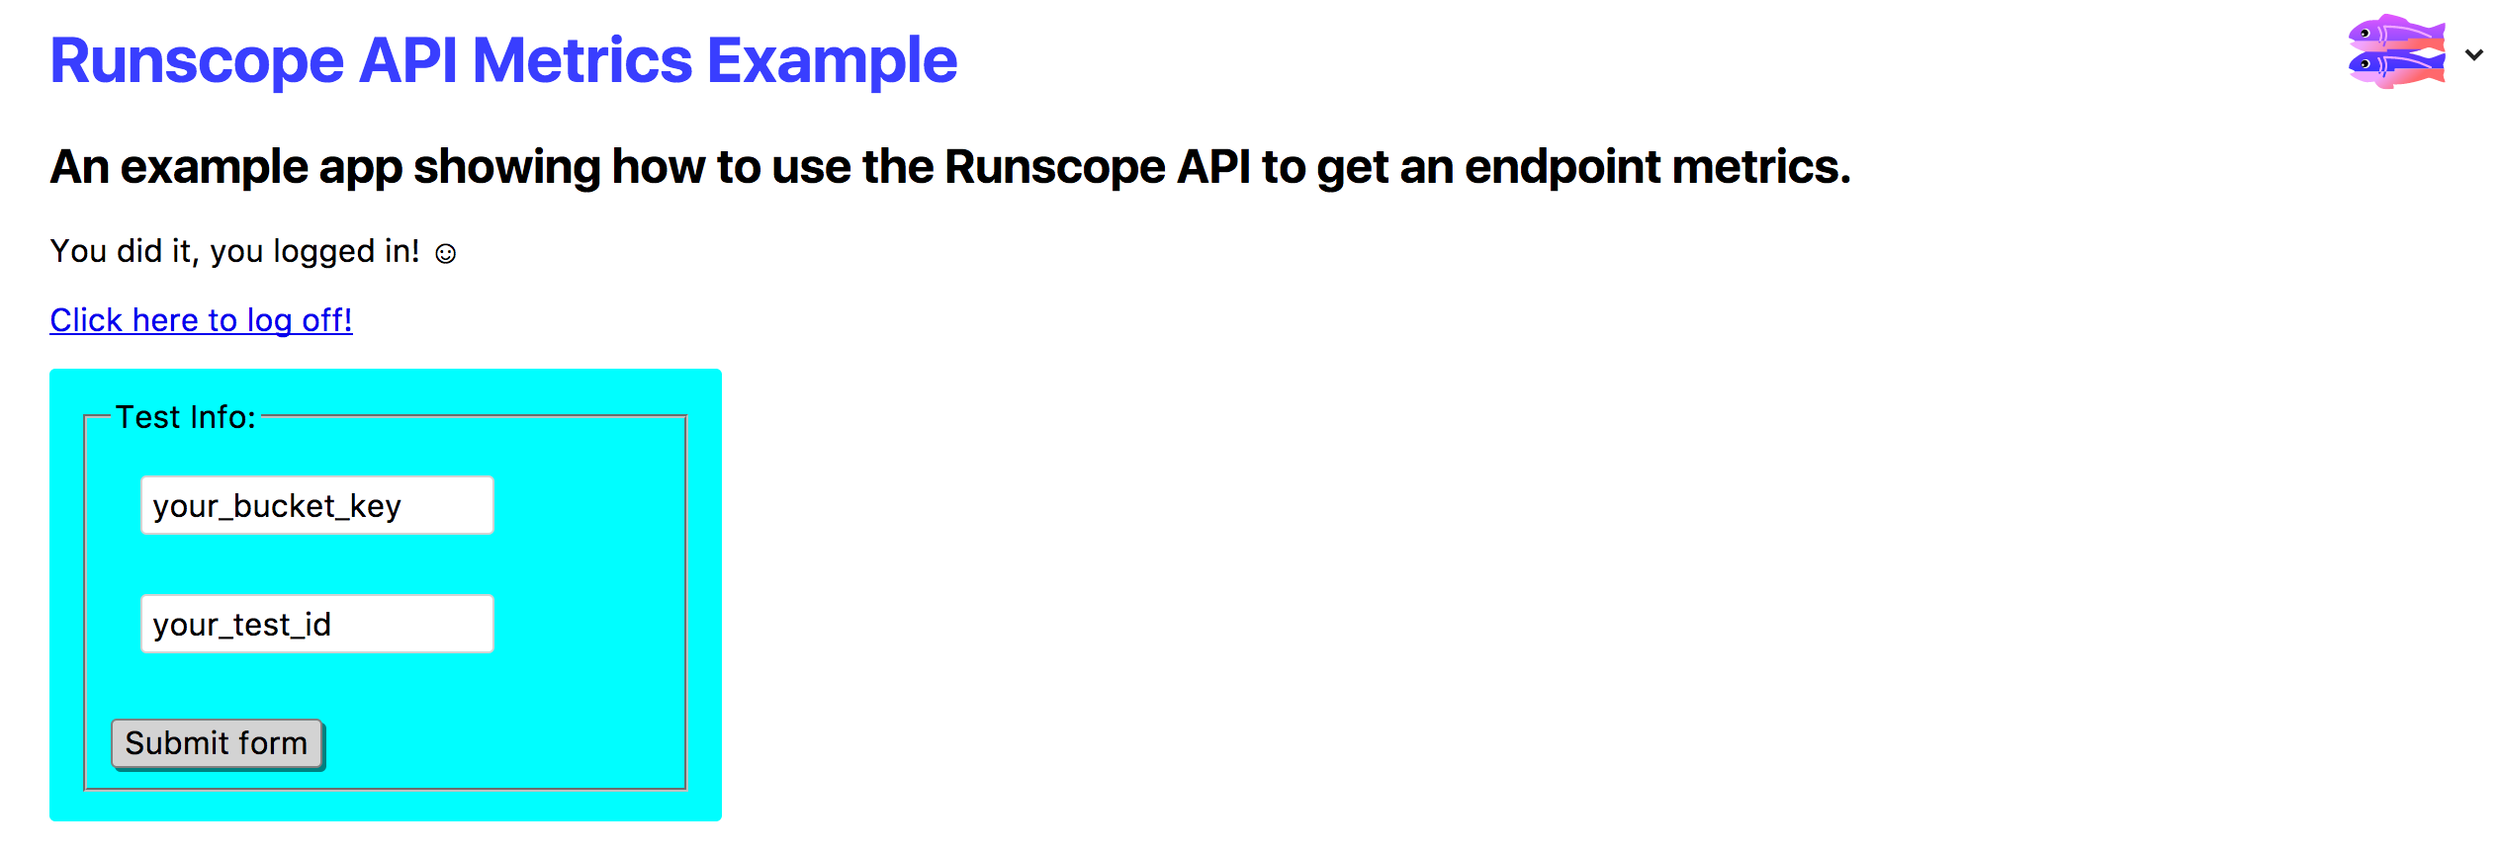 The Glitch runscope-api-metric app, showing the screen after a successful authentication with a user's Runscope credentials. It contains a simple form with two text fields: one for the bucket key with the placeholder text your_bucket_key, and one for the test id with the placeholder text your_test_id. There's a submit form button below the two fields, that will make the API call to the Runscope API Metrics endpoint with the information in the text fields.